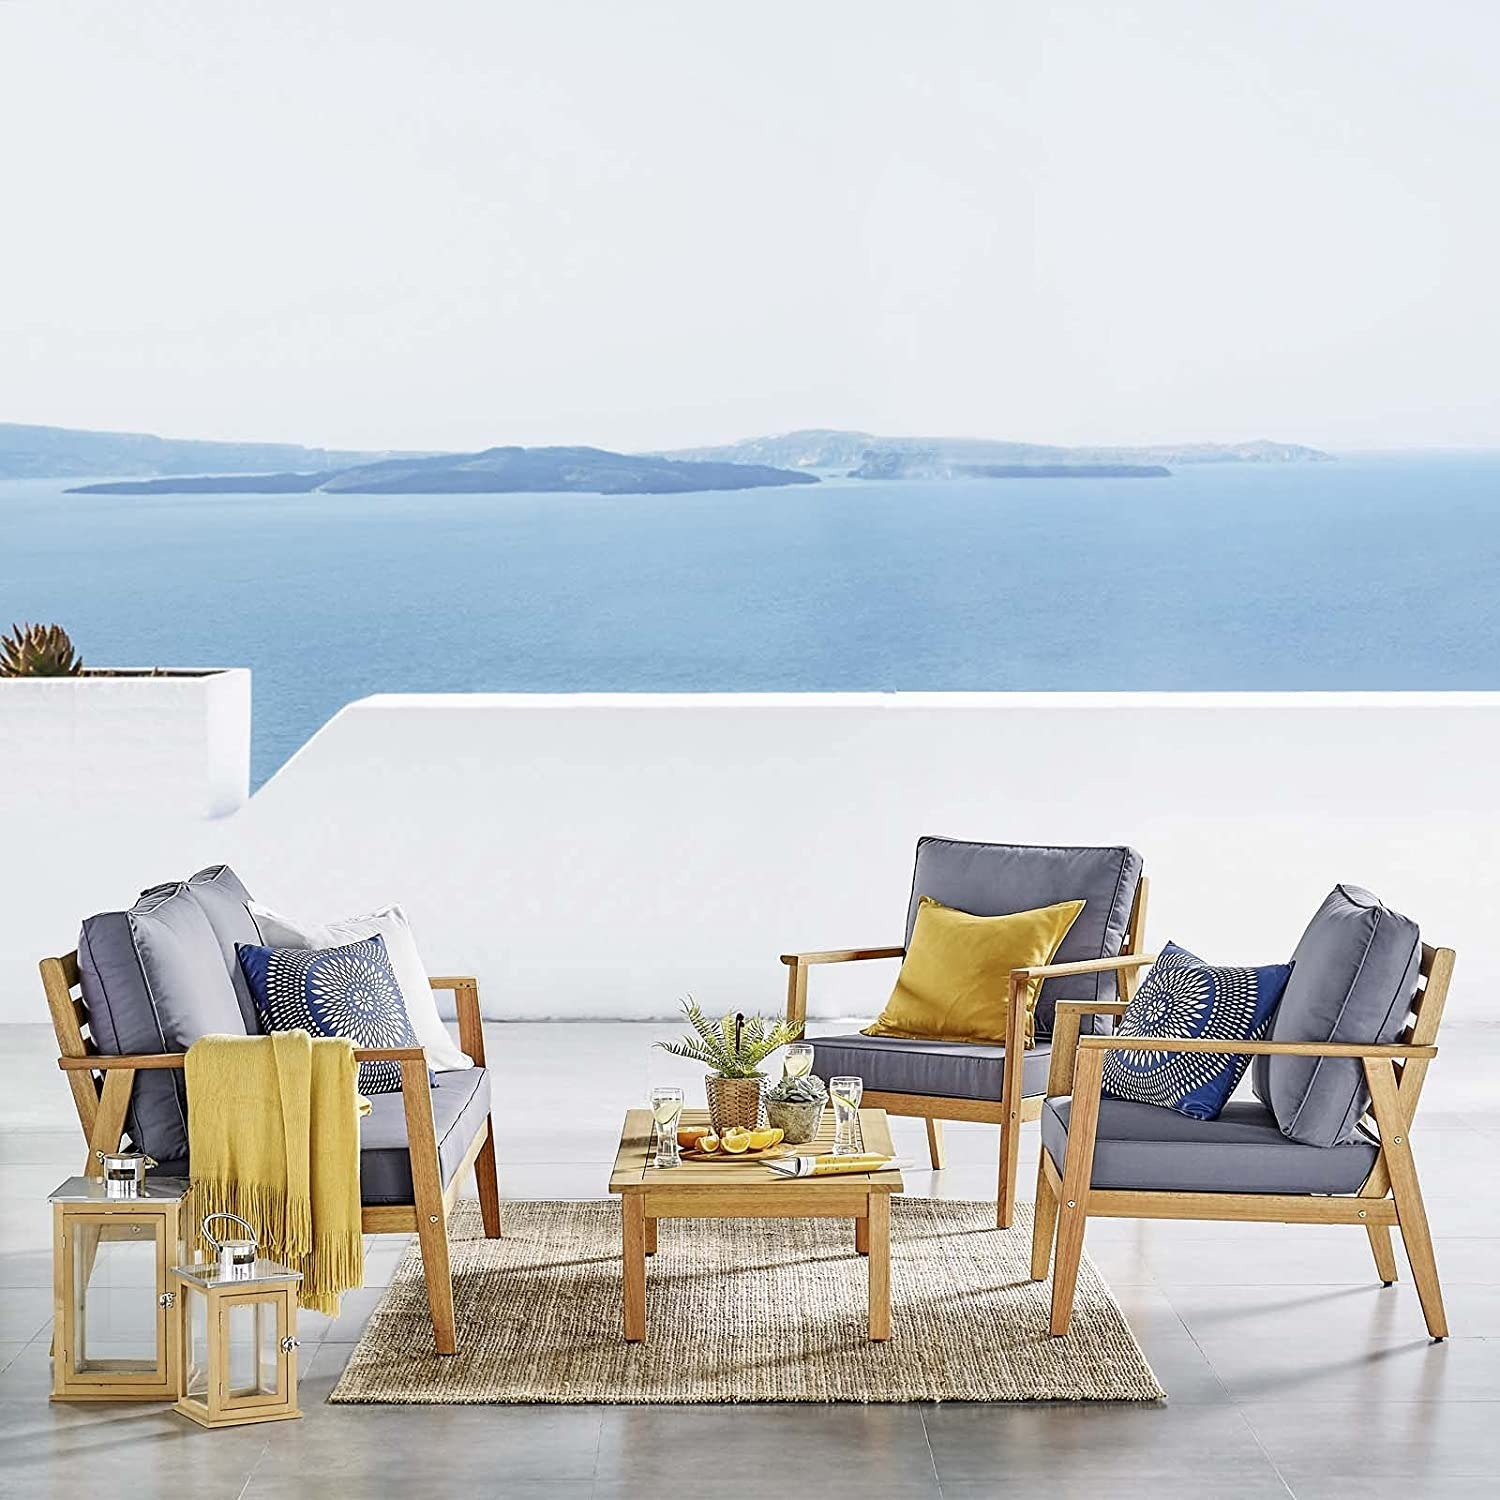 4-Piece Outdoor Patio Set In Natural Gray Wood - image-3